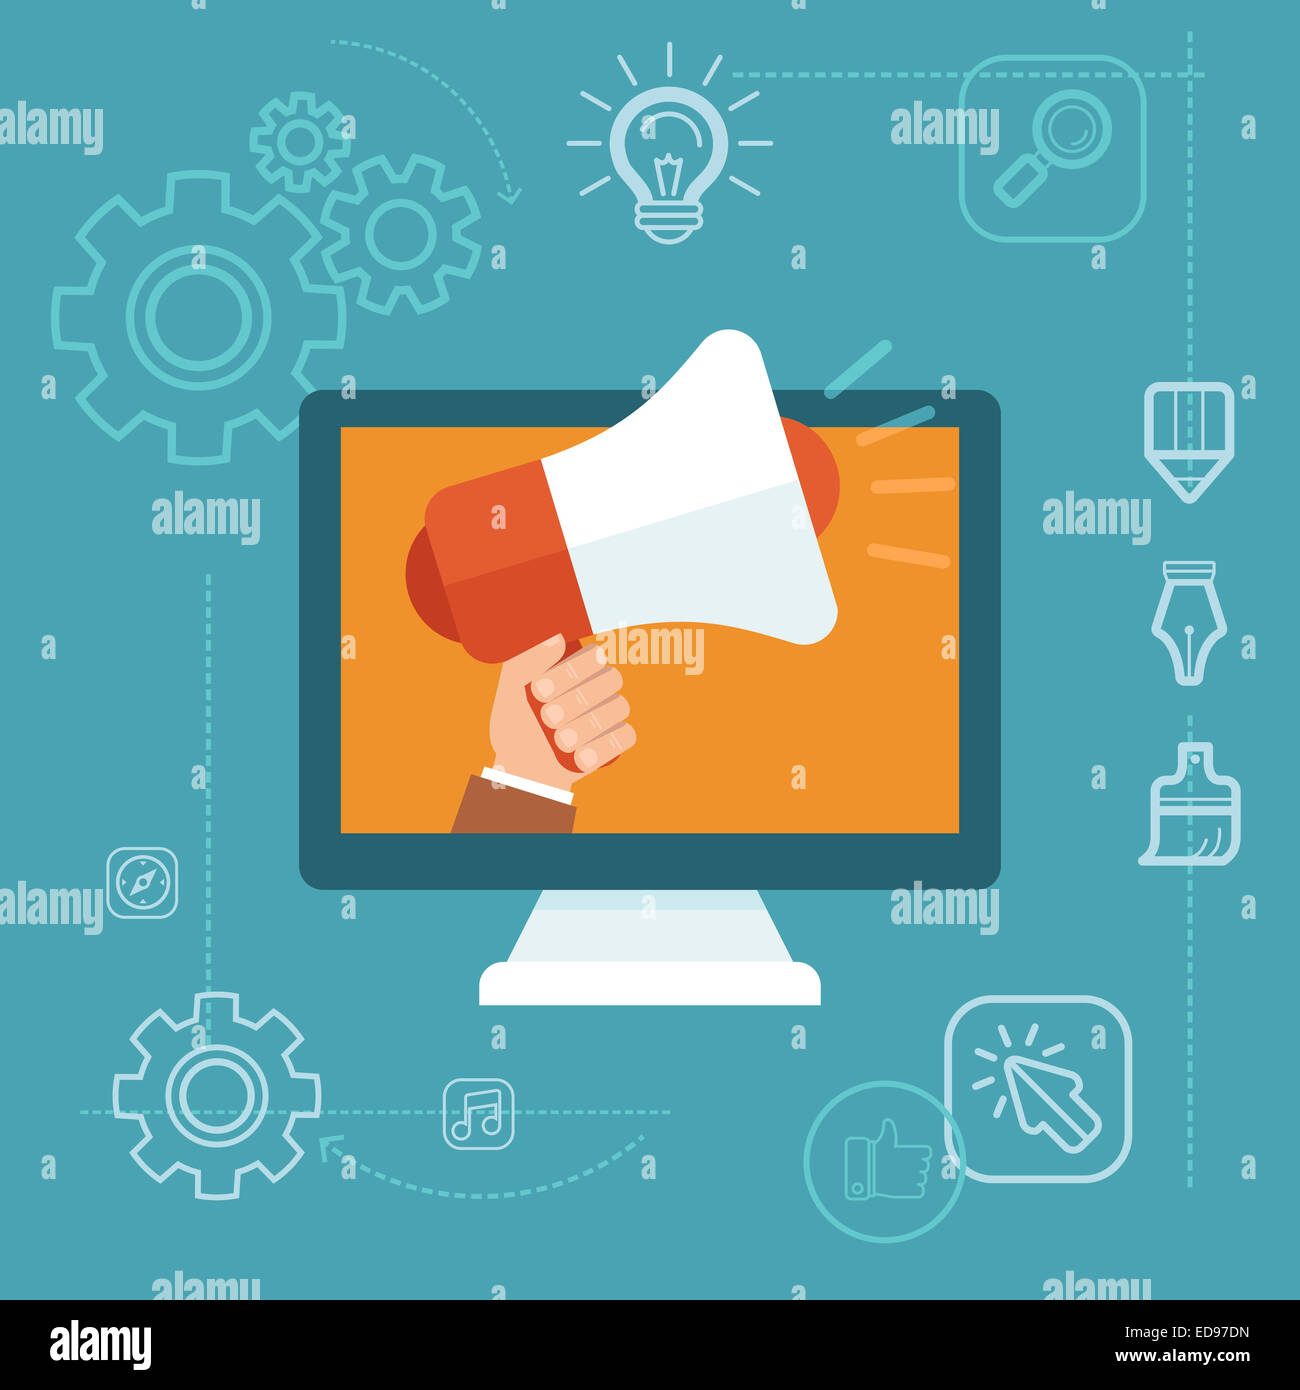 Digital marketing concept in flat style - hand holding megaphone - online advertising campaign development - Stock Image